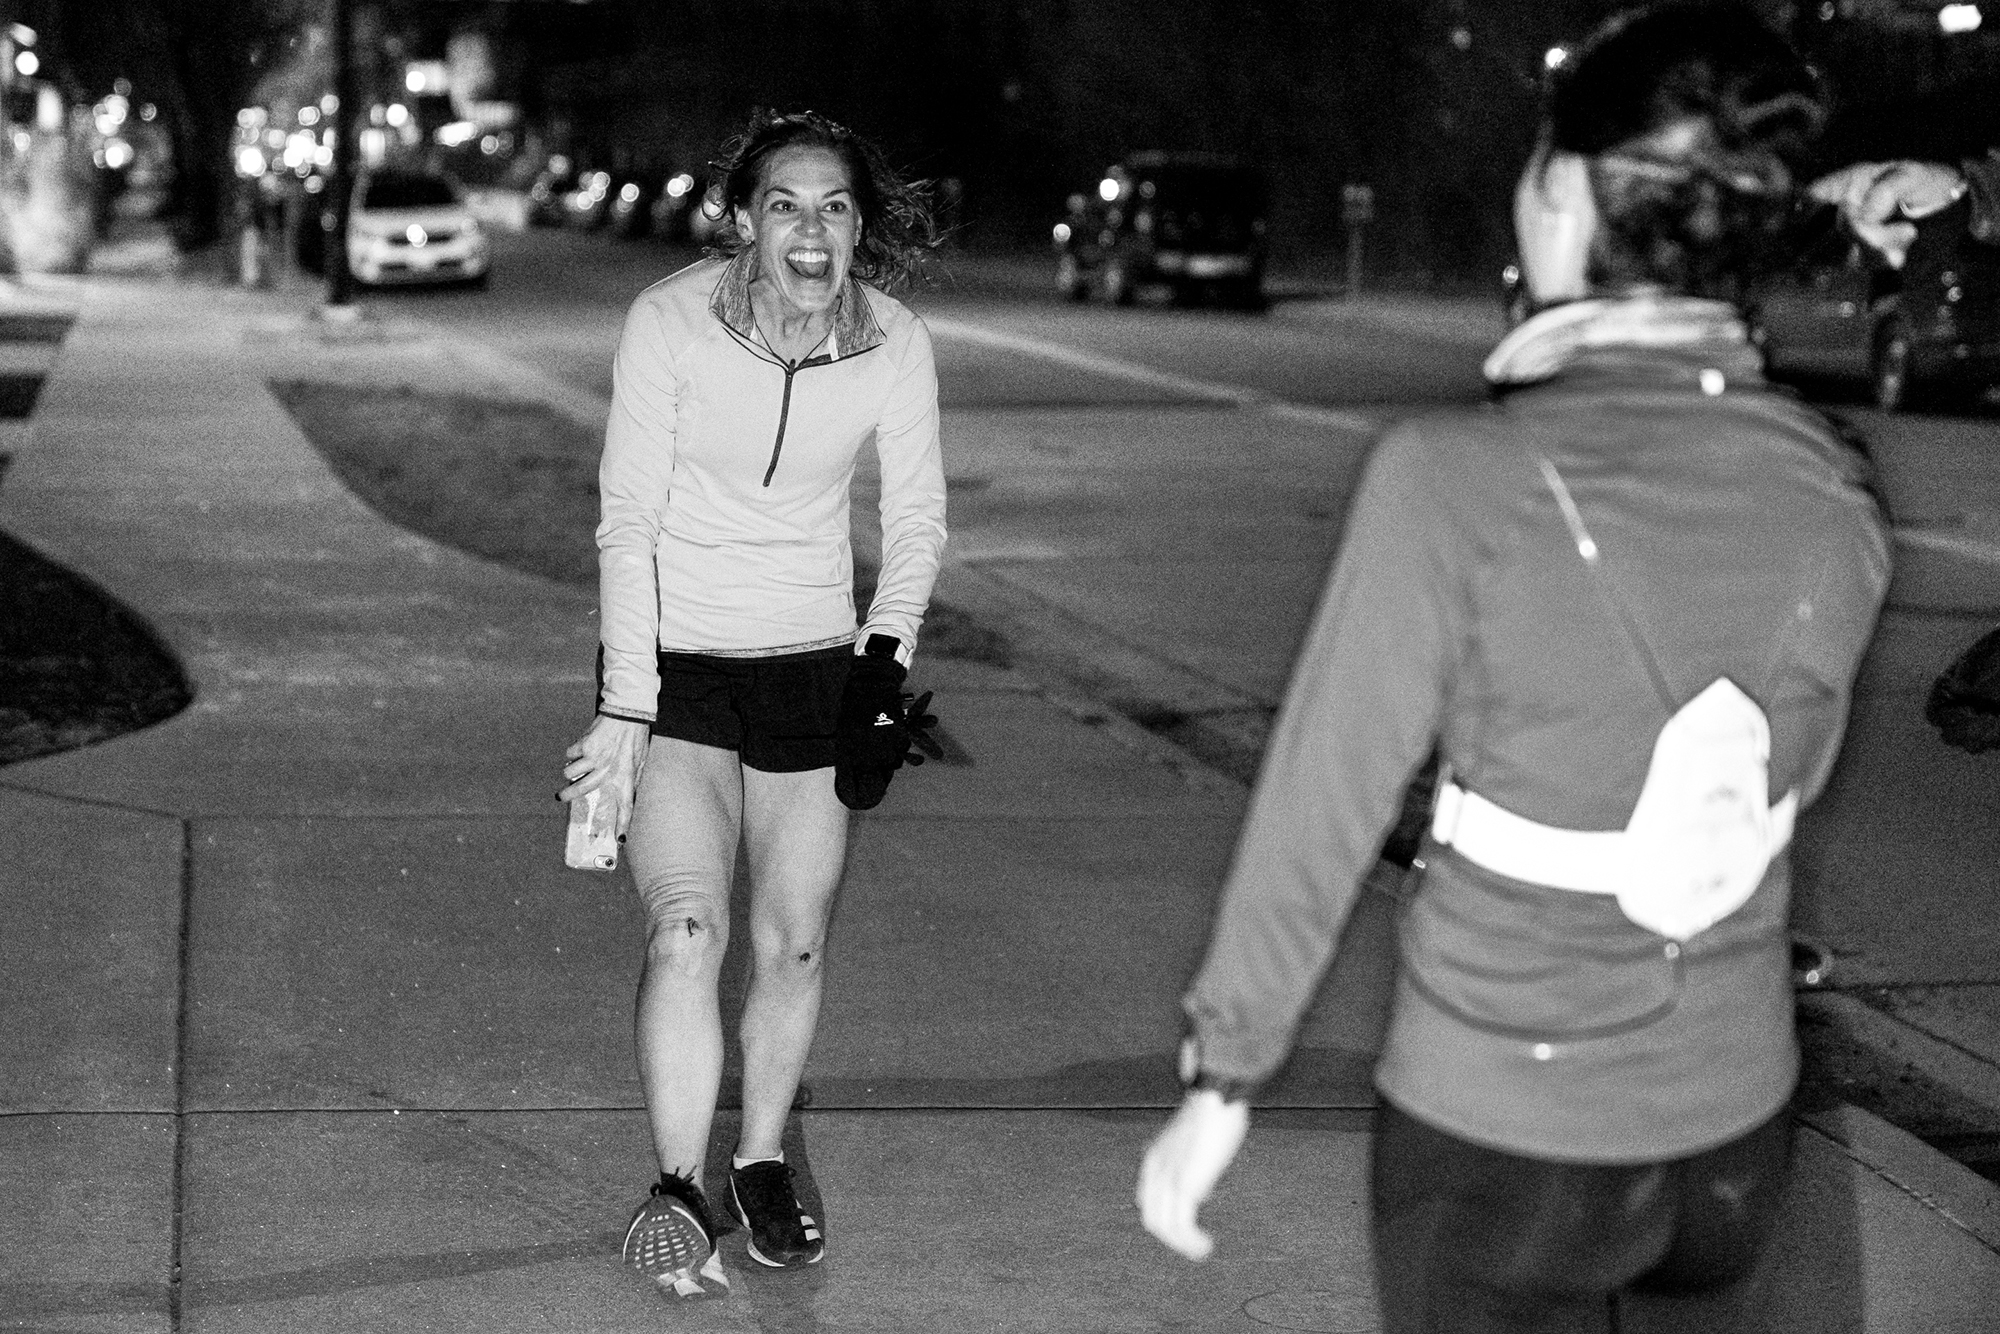 Matt Trappe photographs runner finished happy to see her friends with skinned knees and big grins for TTB in Denver